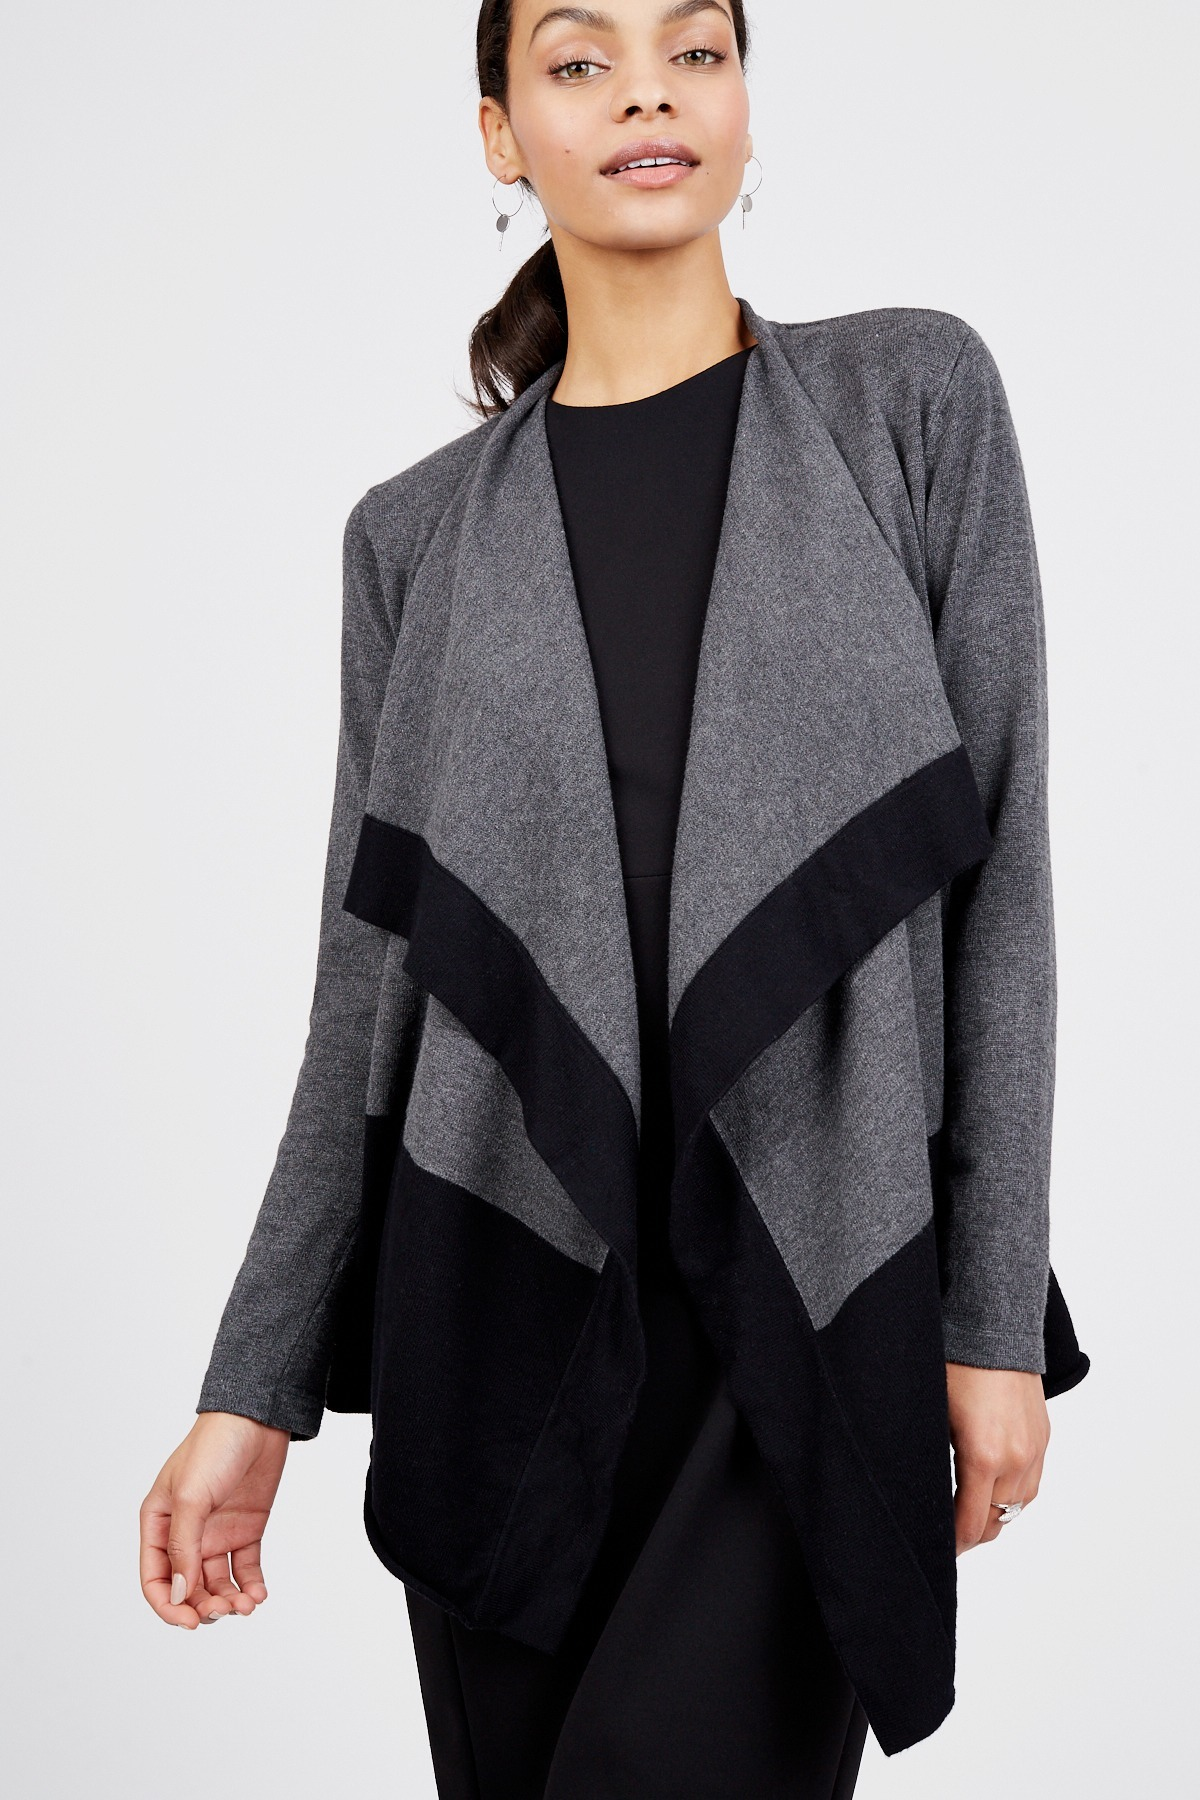 drape qui black stars michael l cardigan drapes back blk draped